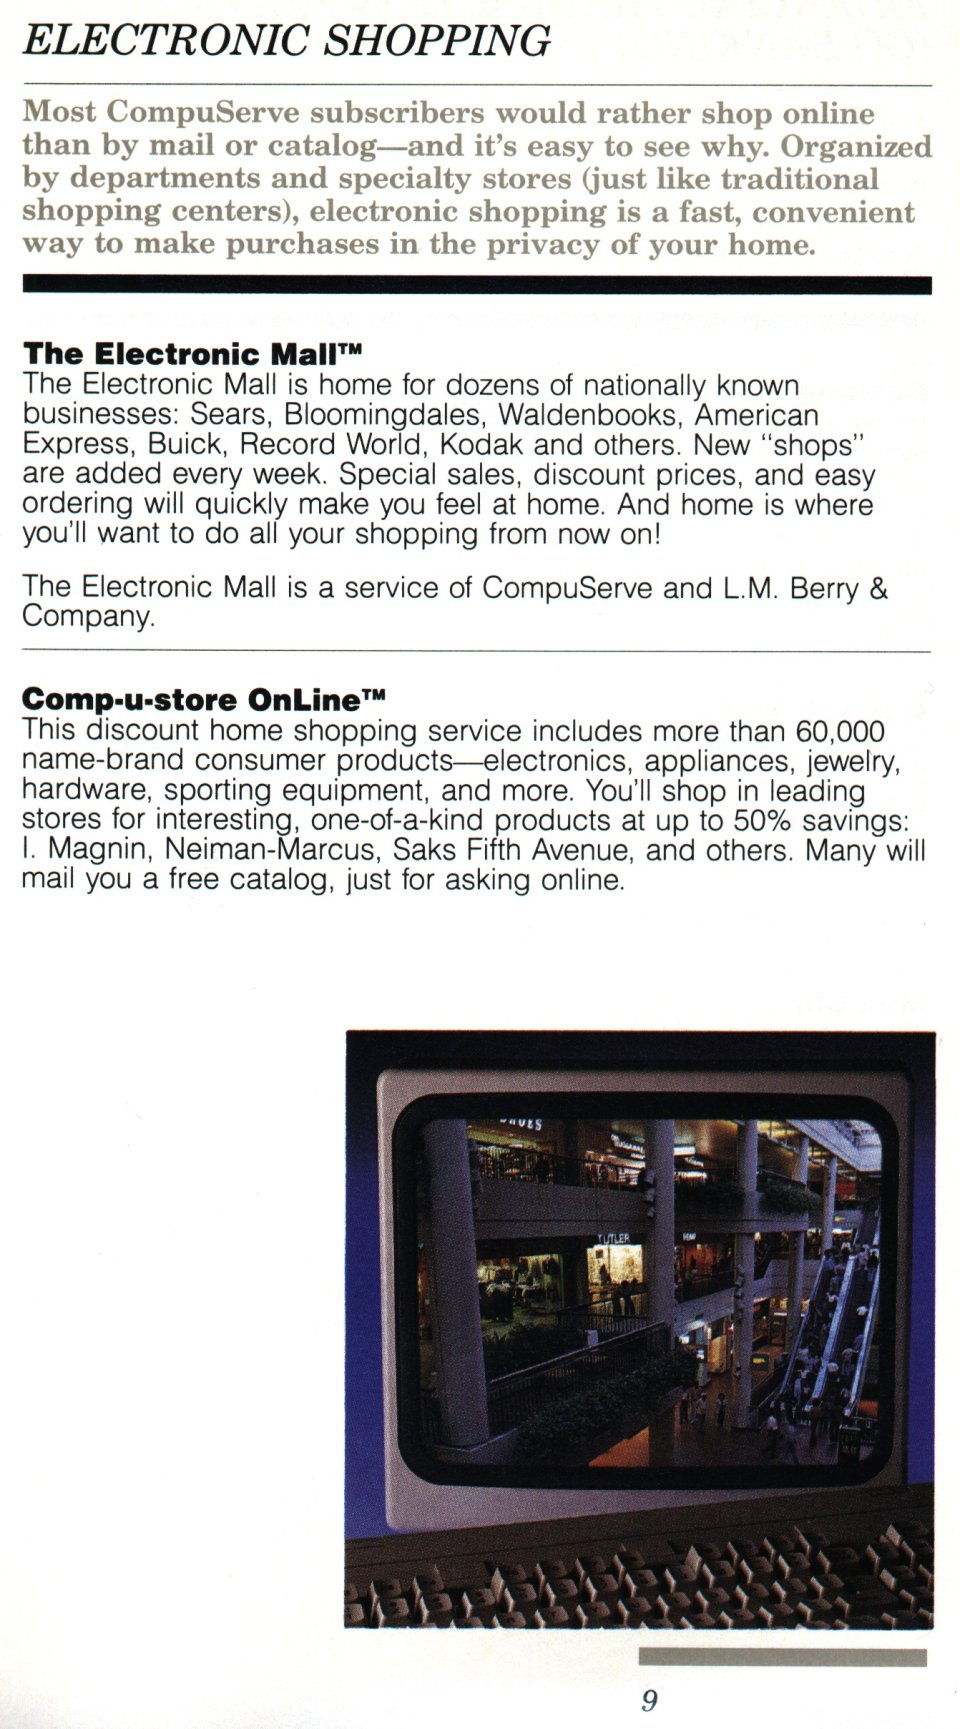 [CompuServe IntroPak page 9/44  Electronic Shopping]